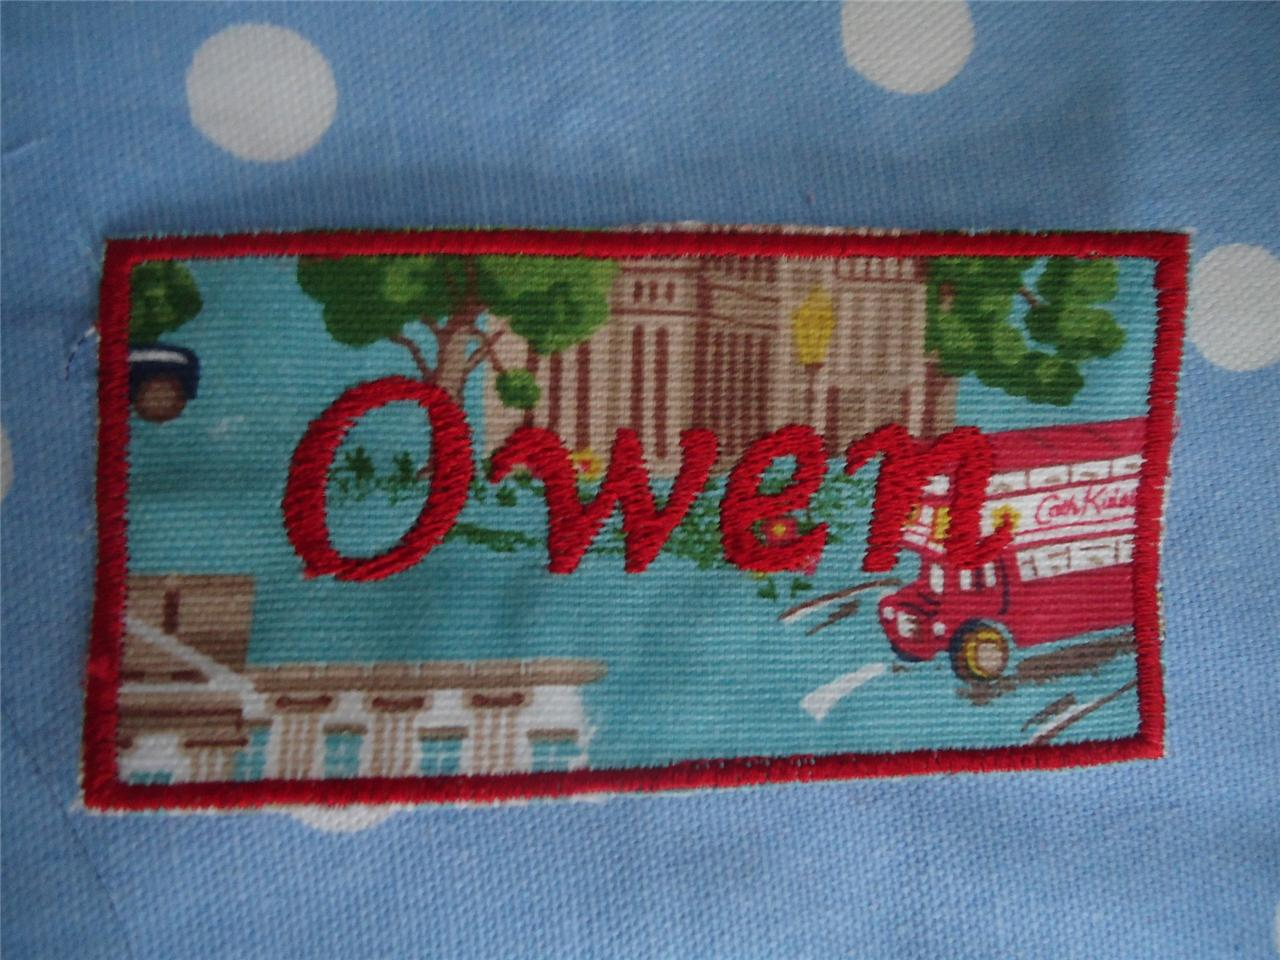 1-CATH-KIDSTON-TILDA-FABRIC-HANDMADE-PERSONALISED-EMBROIDERED-MOTIF-PATCH-BADGE